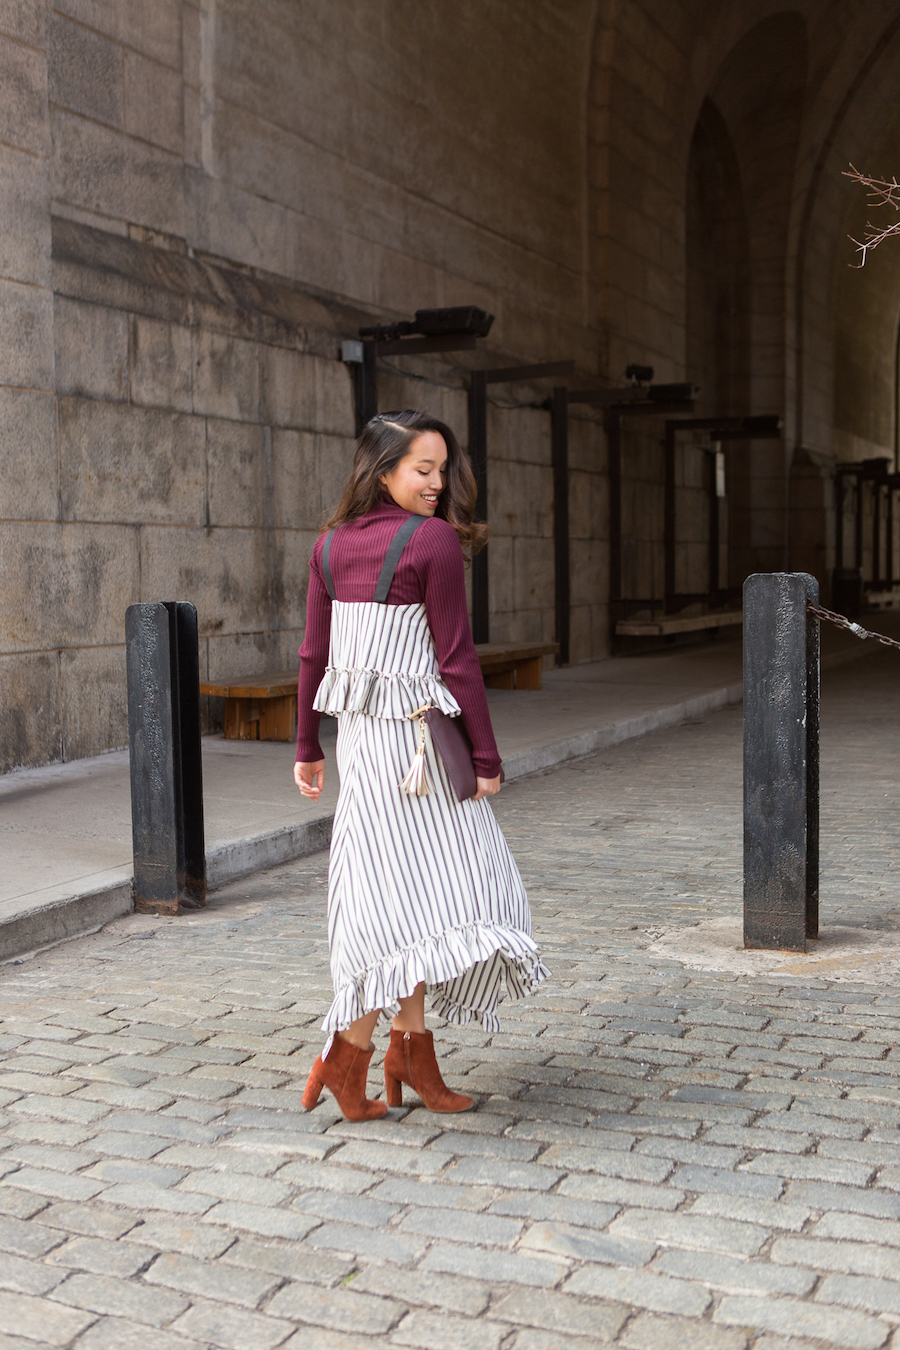 Melanie-Sutrathada-of-fashion-and-lifestyle-blog-Lace-and-Combat-Boots-styles-a-black-and-white-pin-stripe-ASOS-dress-over-a-burgundy-mock-neck-from-INC-International-Concepts..jpg